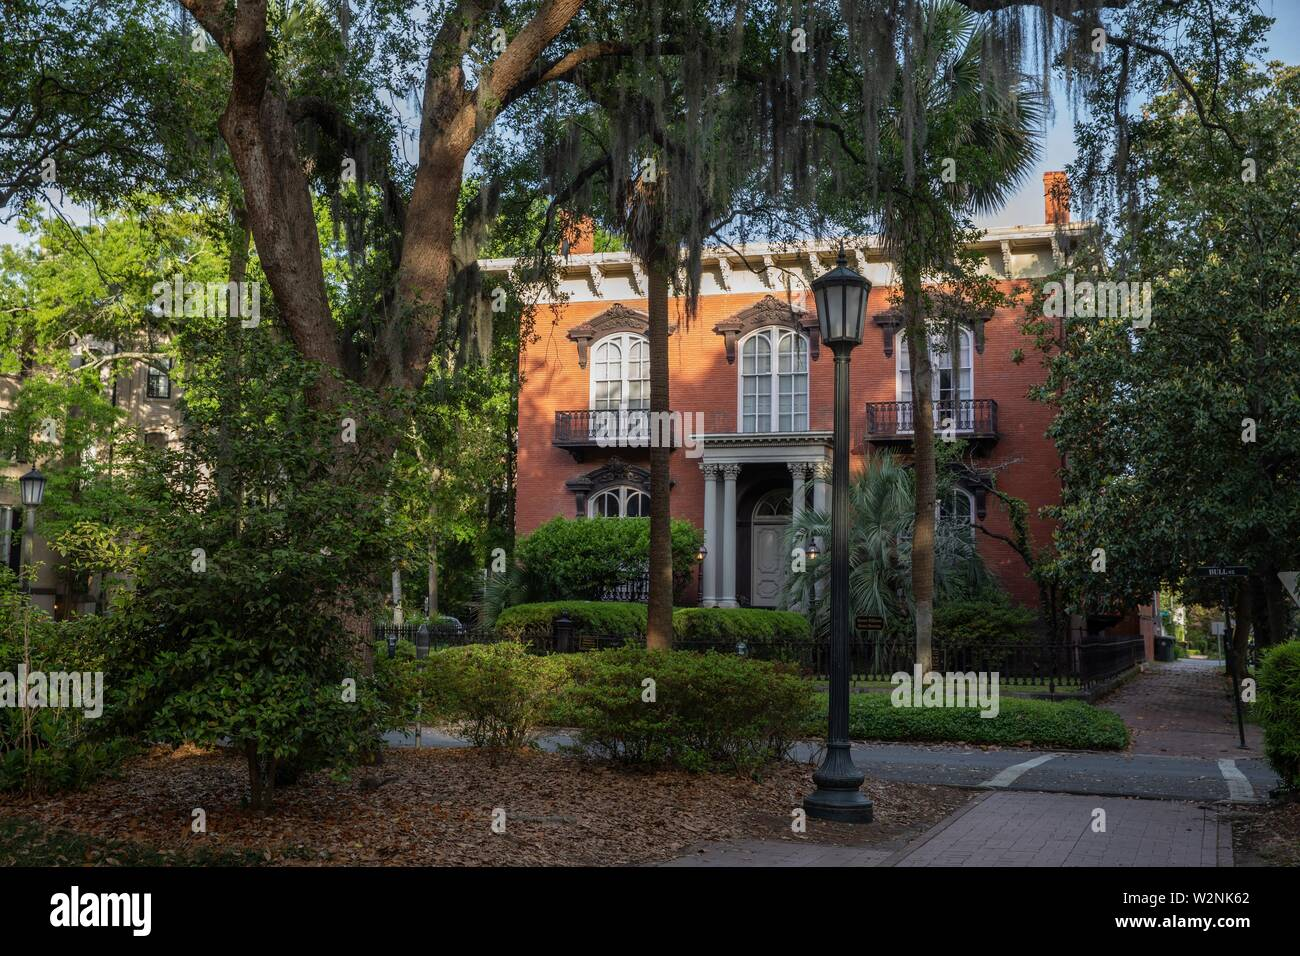 Mercer house Monterey square Jim Williams Midnight in the garden of good and evil. - Stock Image